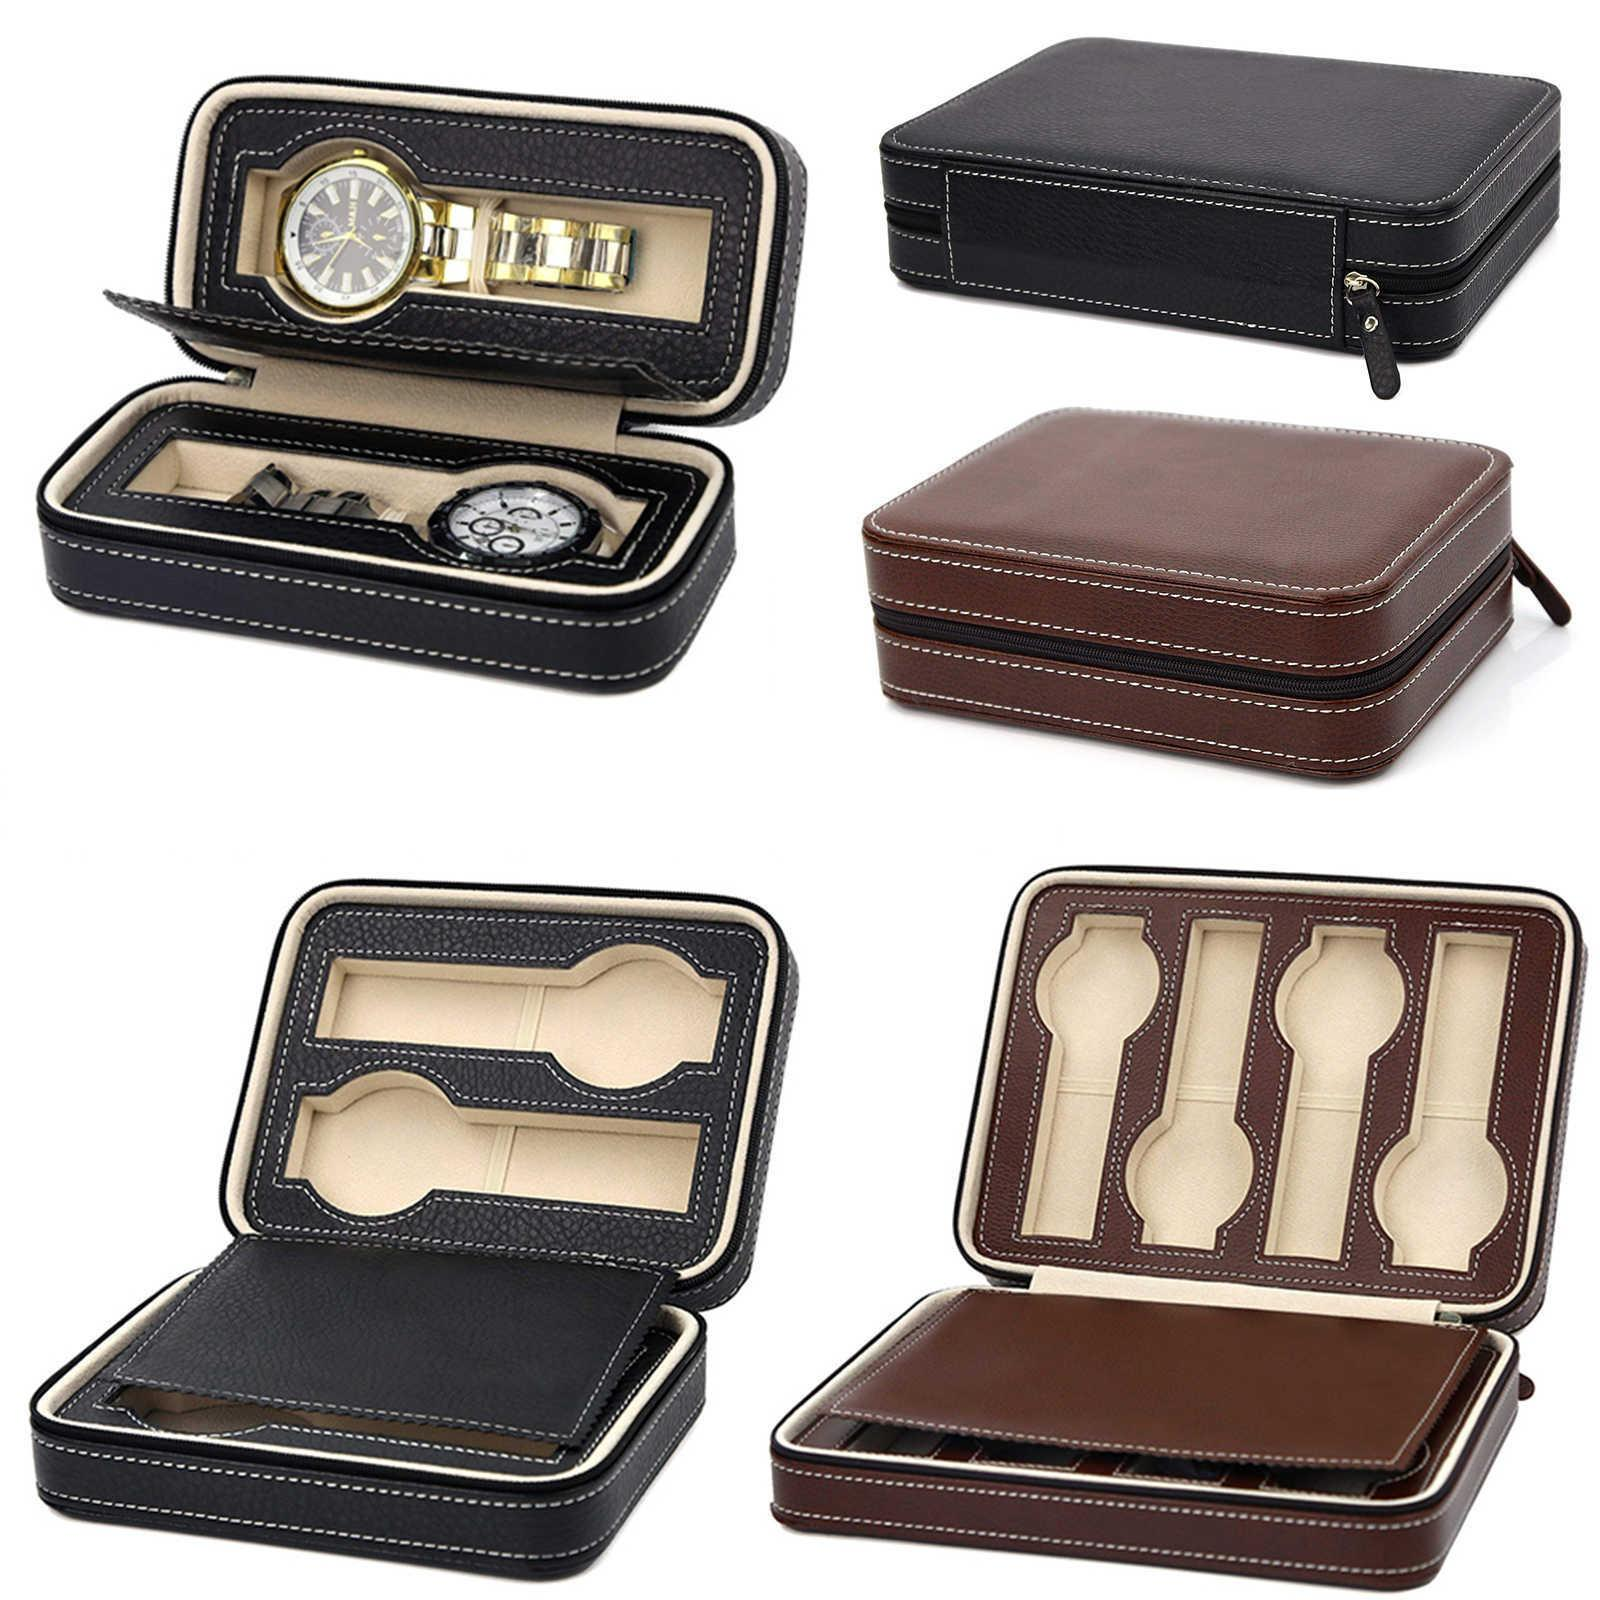 Couro pu portátil 2/4/8 Slot Watch Box Display Case Storage Organizer Watch Zipper Requintado E Durável Para O Amante D35 SH190729